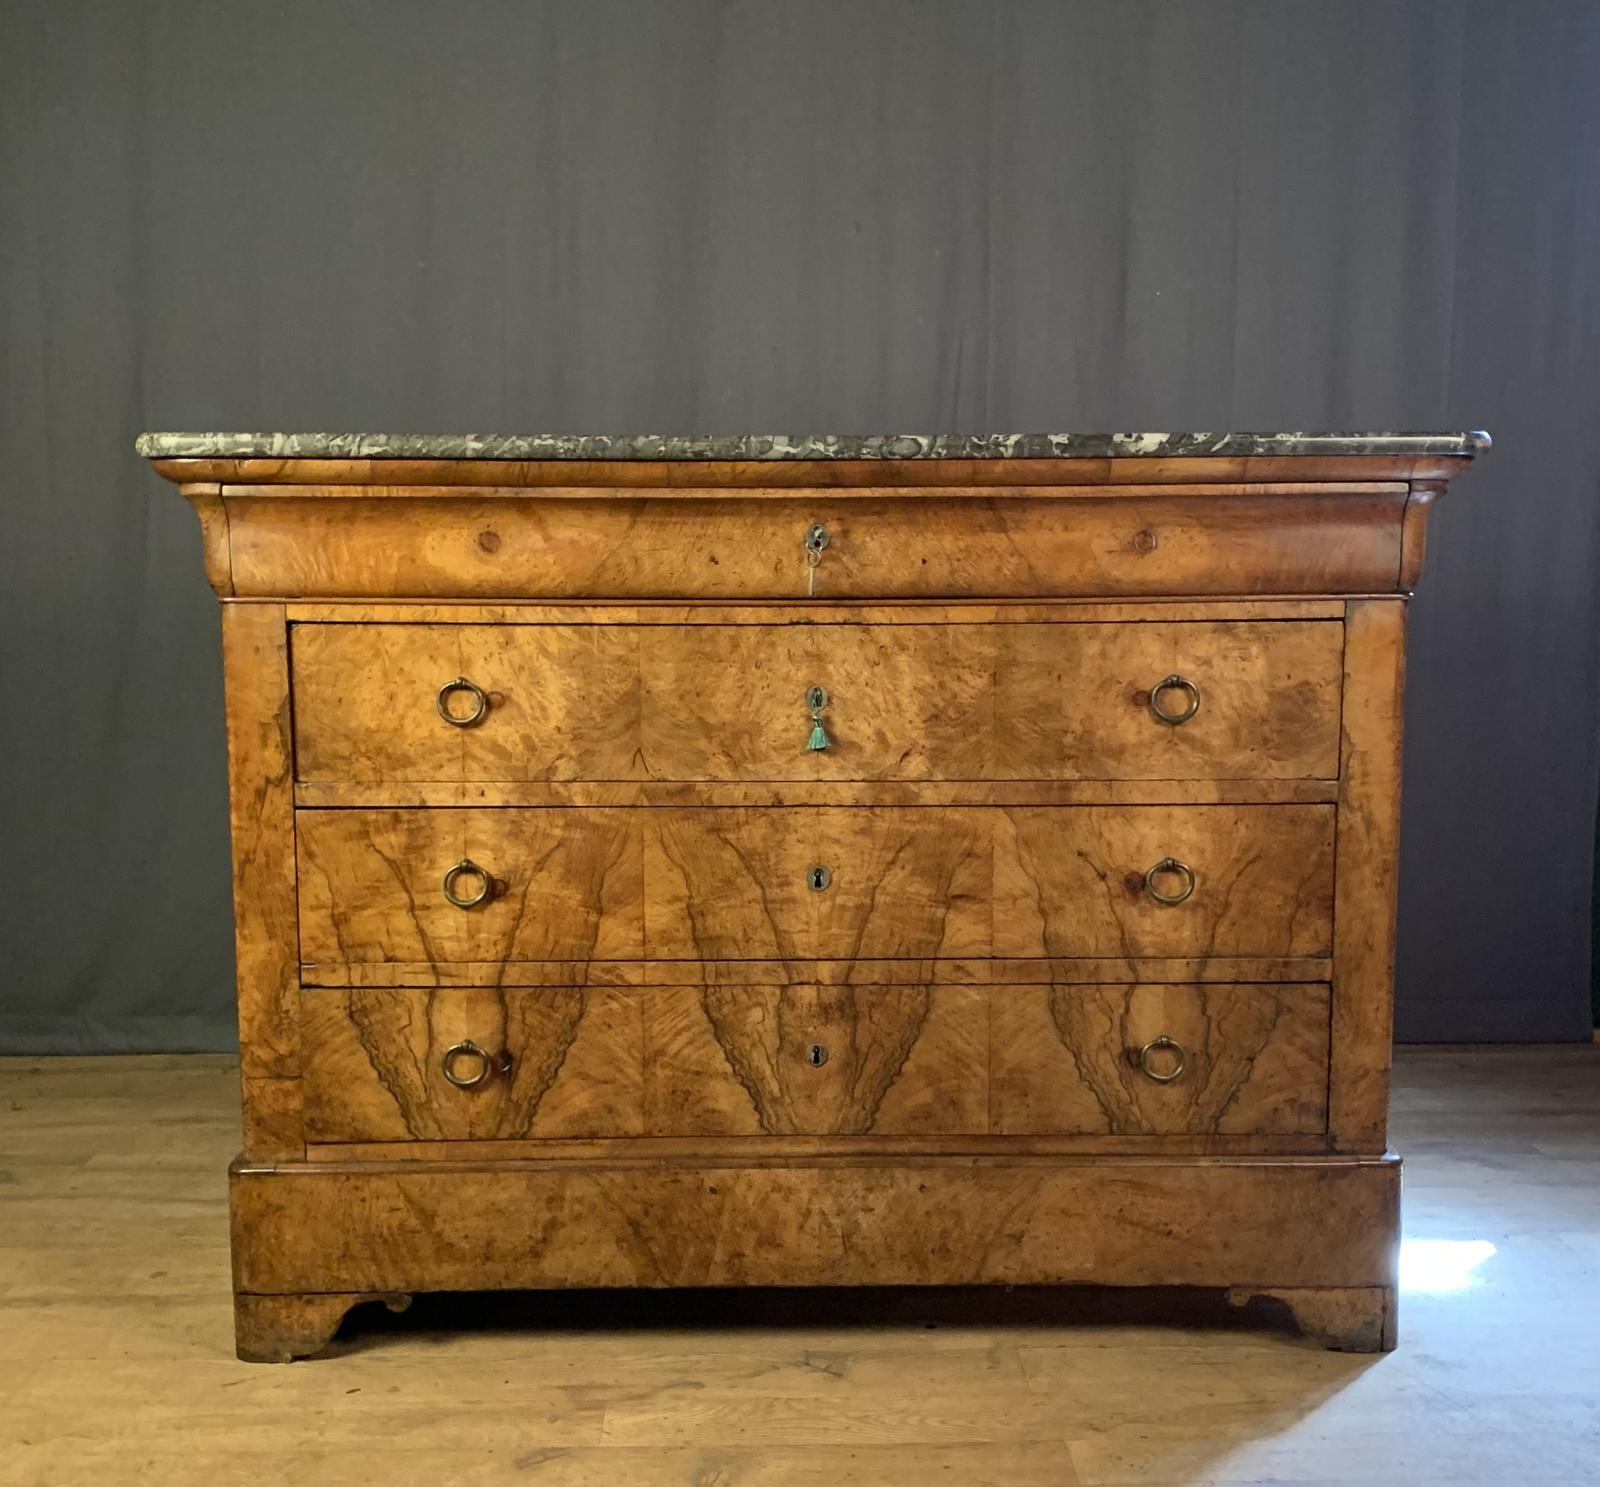 Anthony Wilkinson Decorative Antiques image (1 of 5)